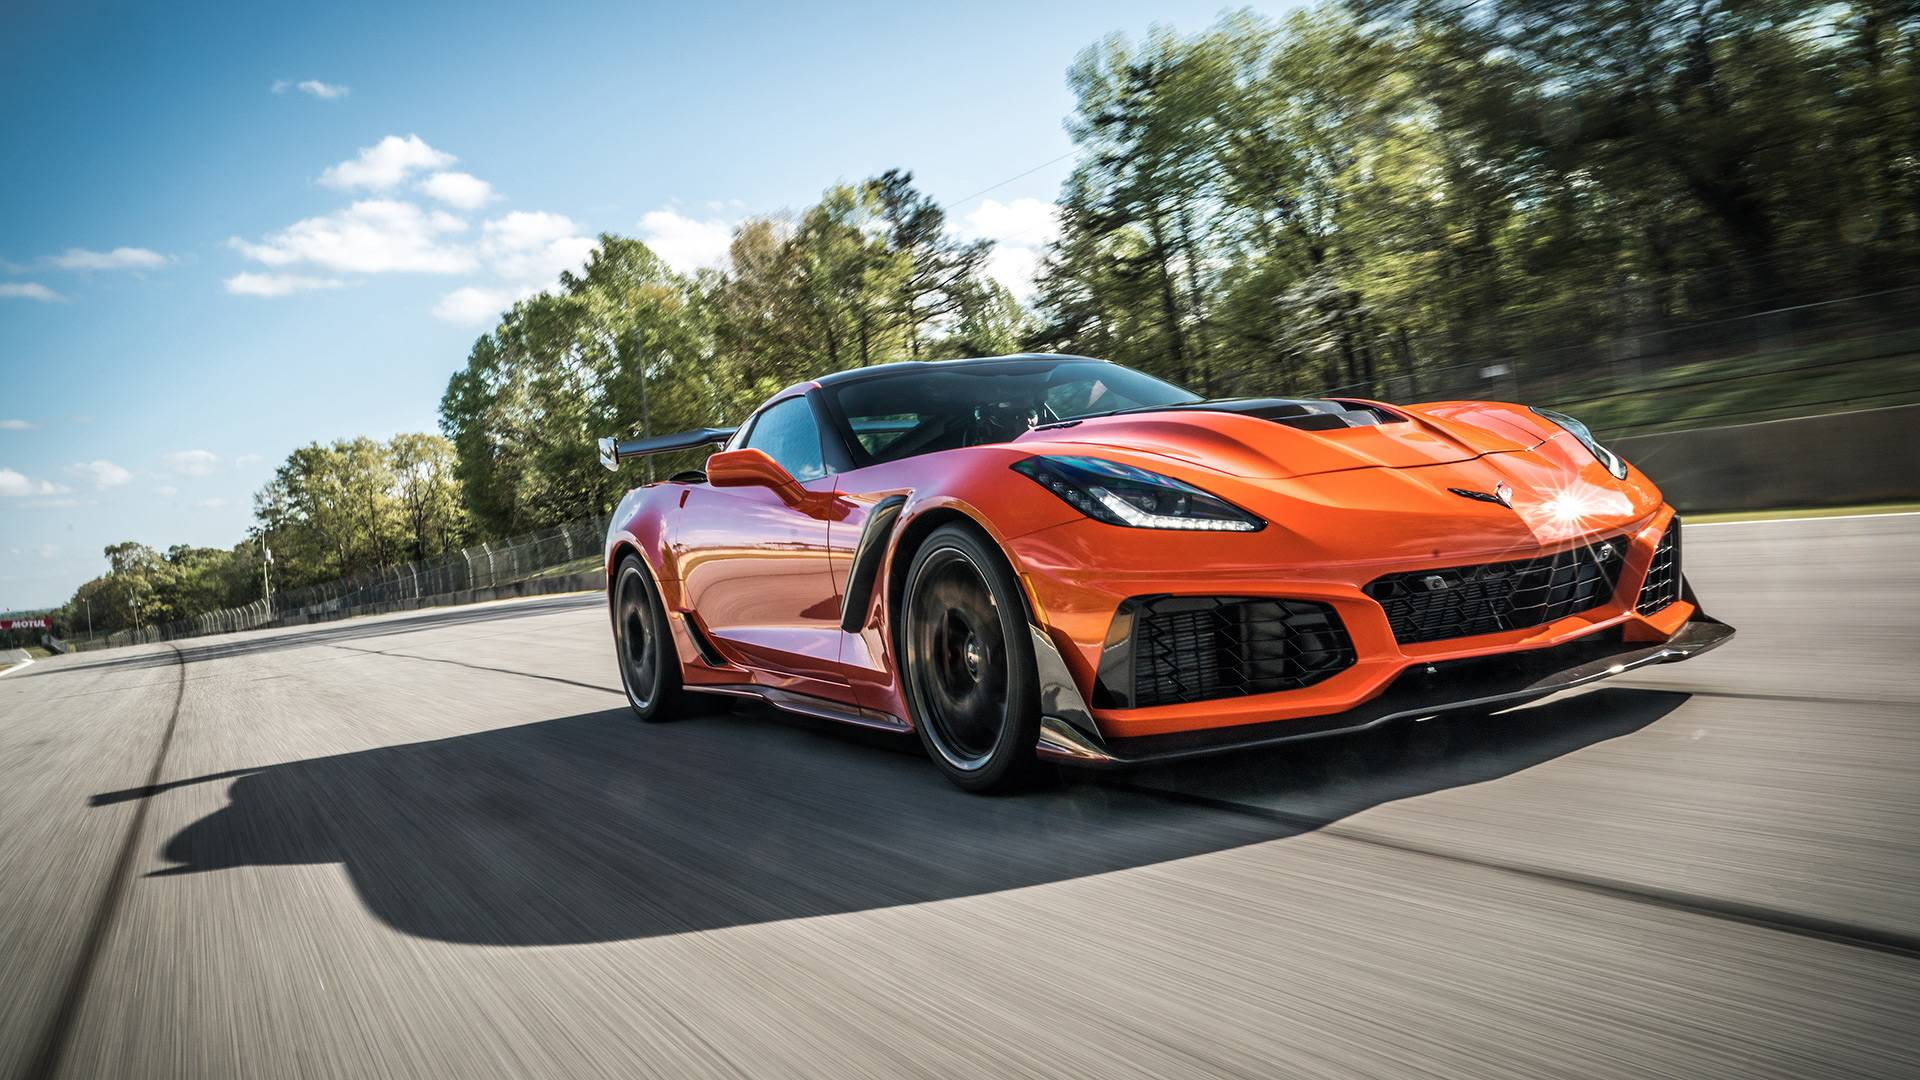 2019 Chevrolet Corvette ZR1 First Drive: More Is Never Enough